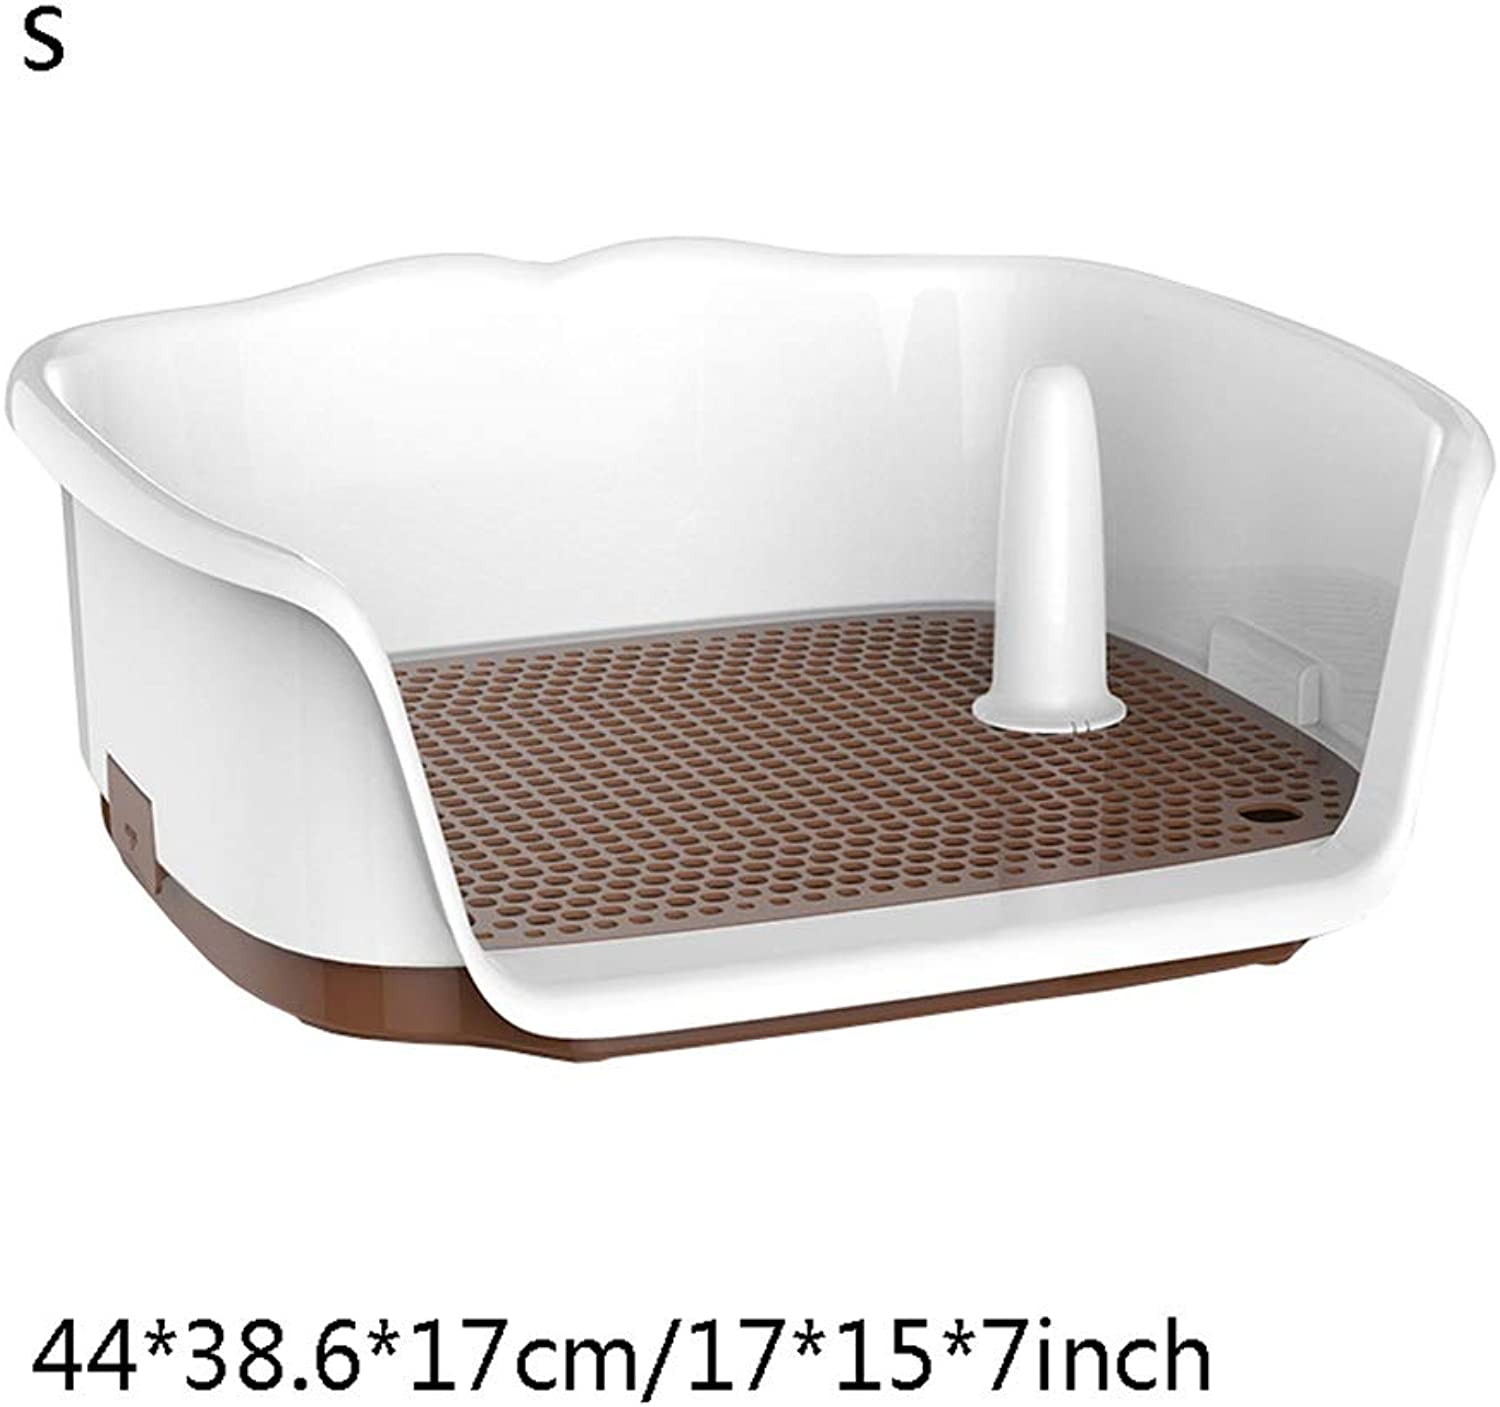 Dog Toilet, Urinal Squatting Potty Bowl Medium Portable Toilet for Dogs and Pets Hygienic for Indoor Use Loo (color    7)